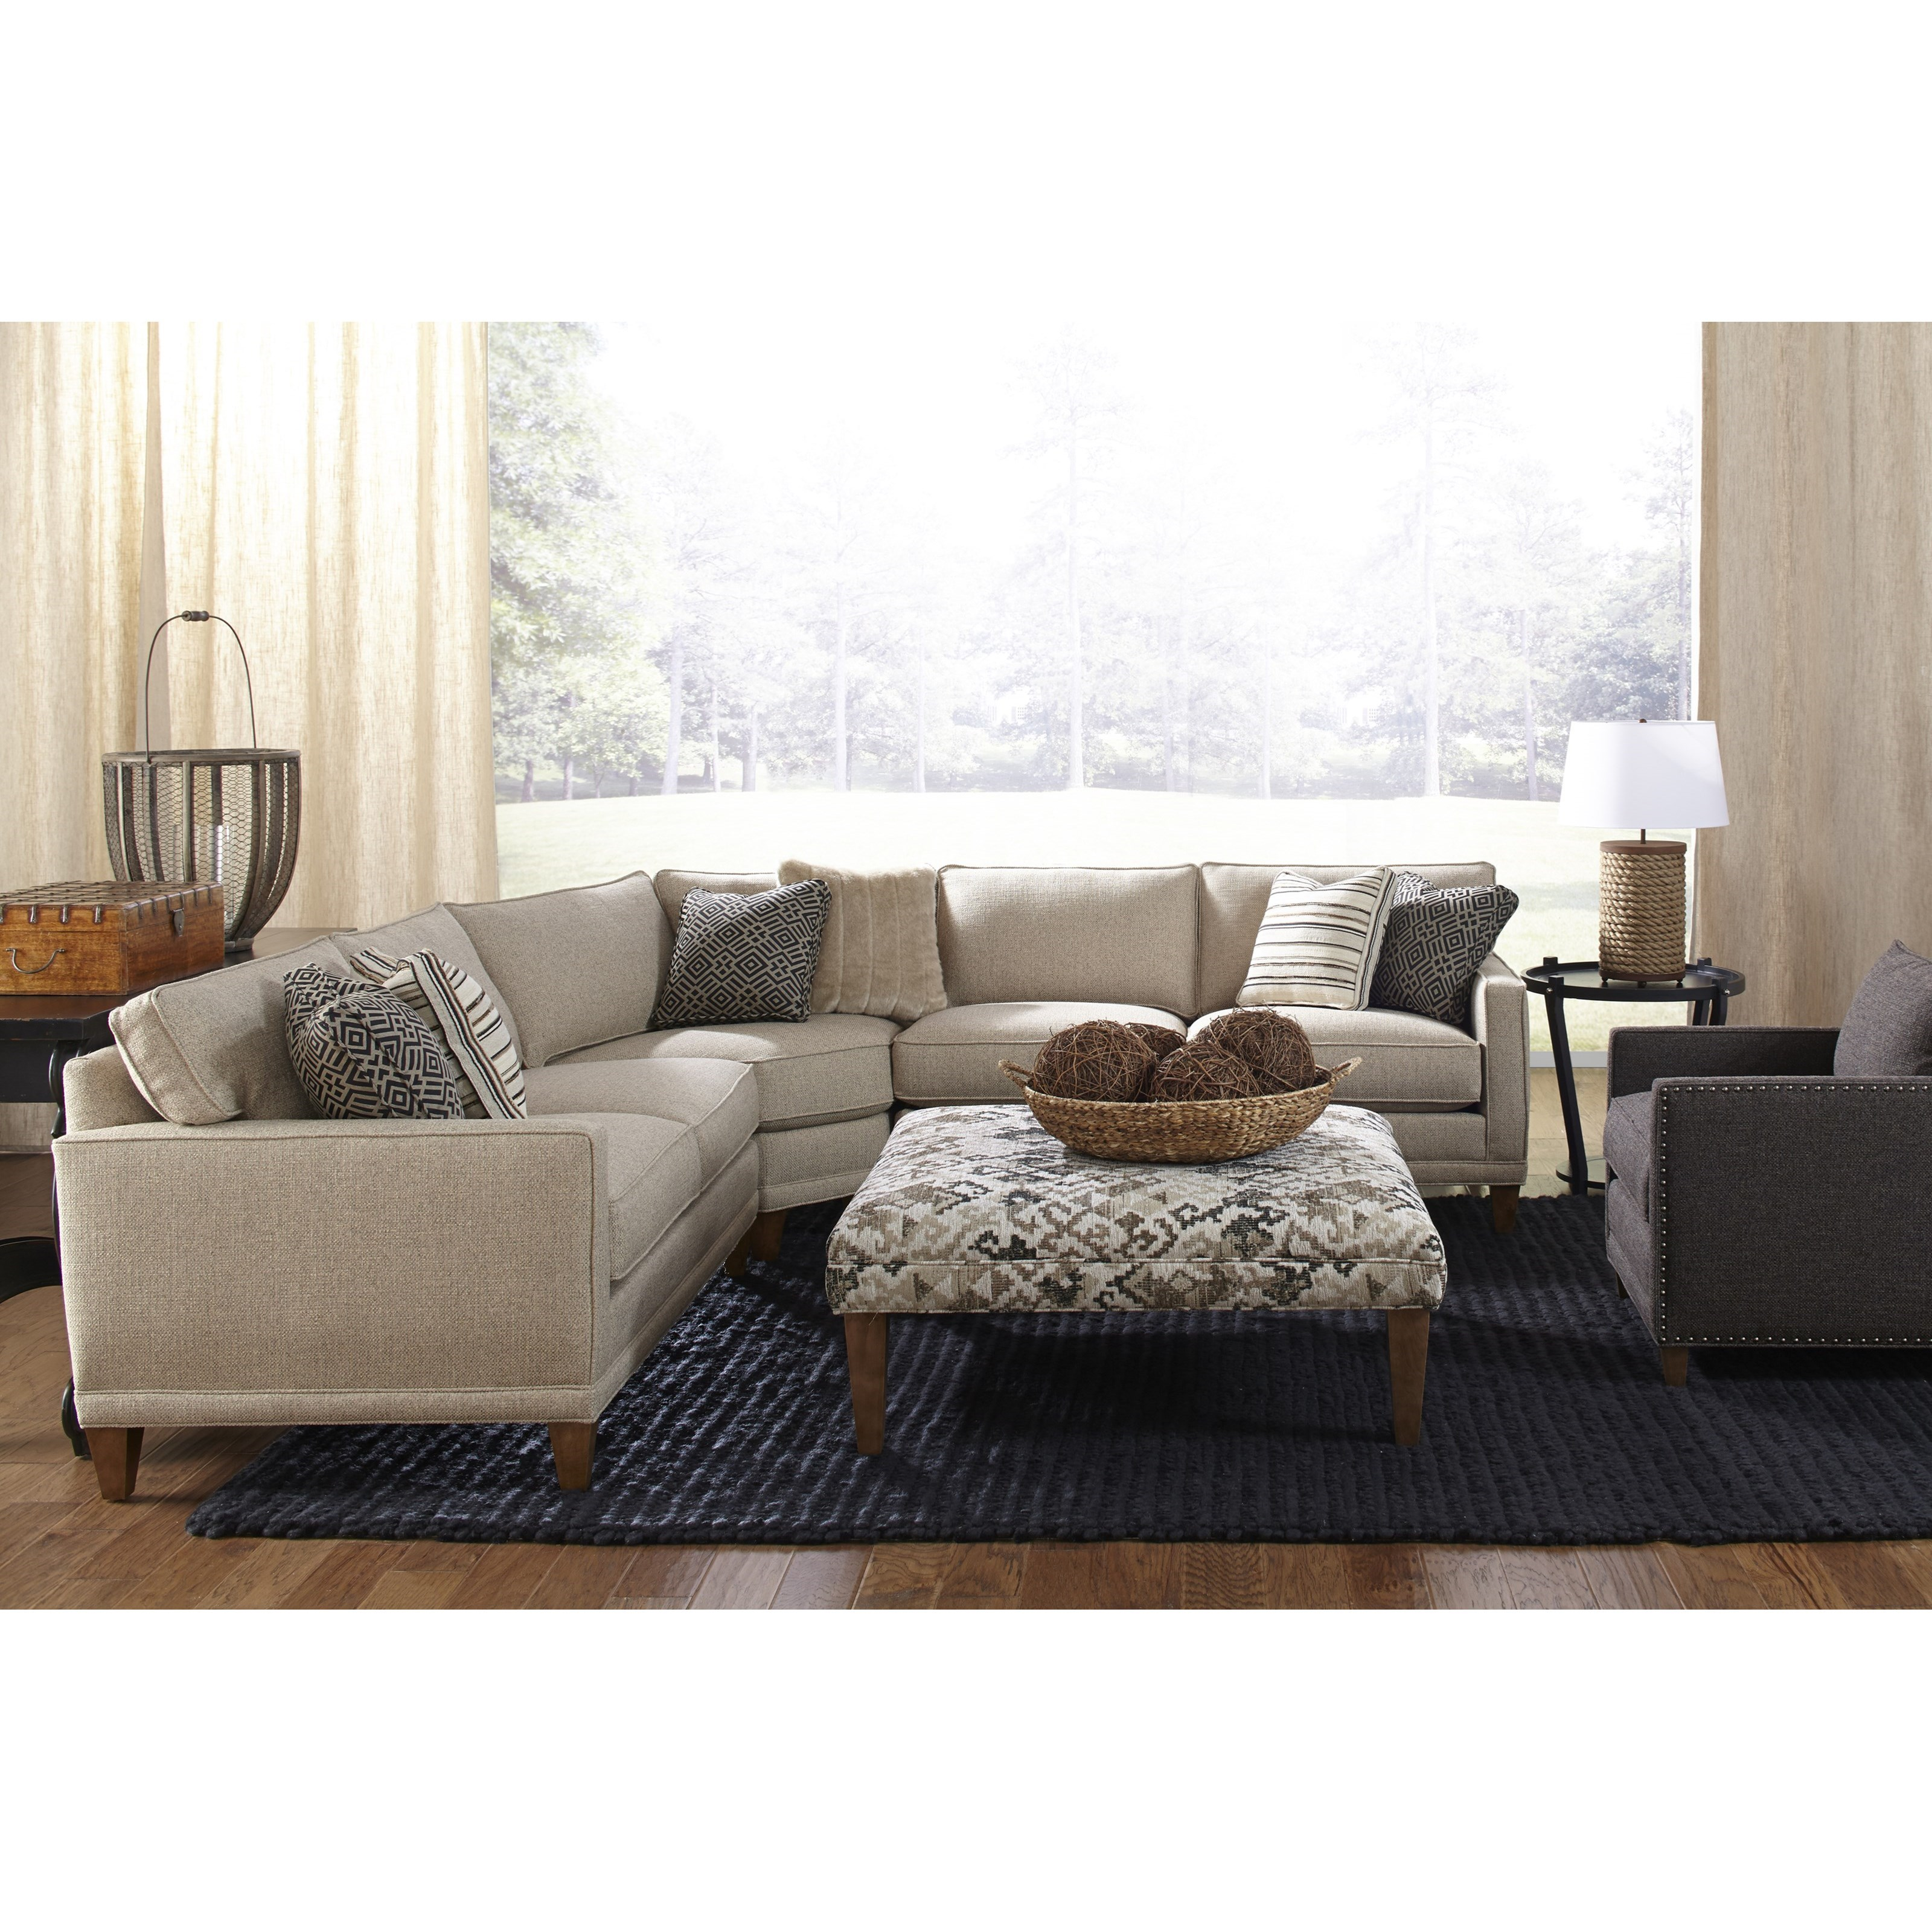 Townsend Three Piece Sectional Sofa by Rowe at Belfort Furniture